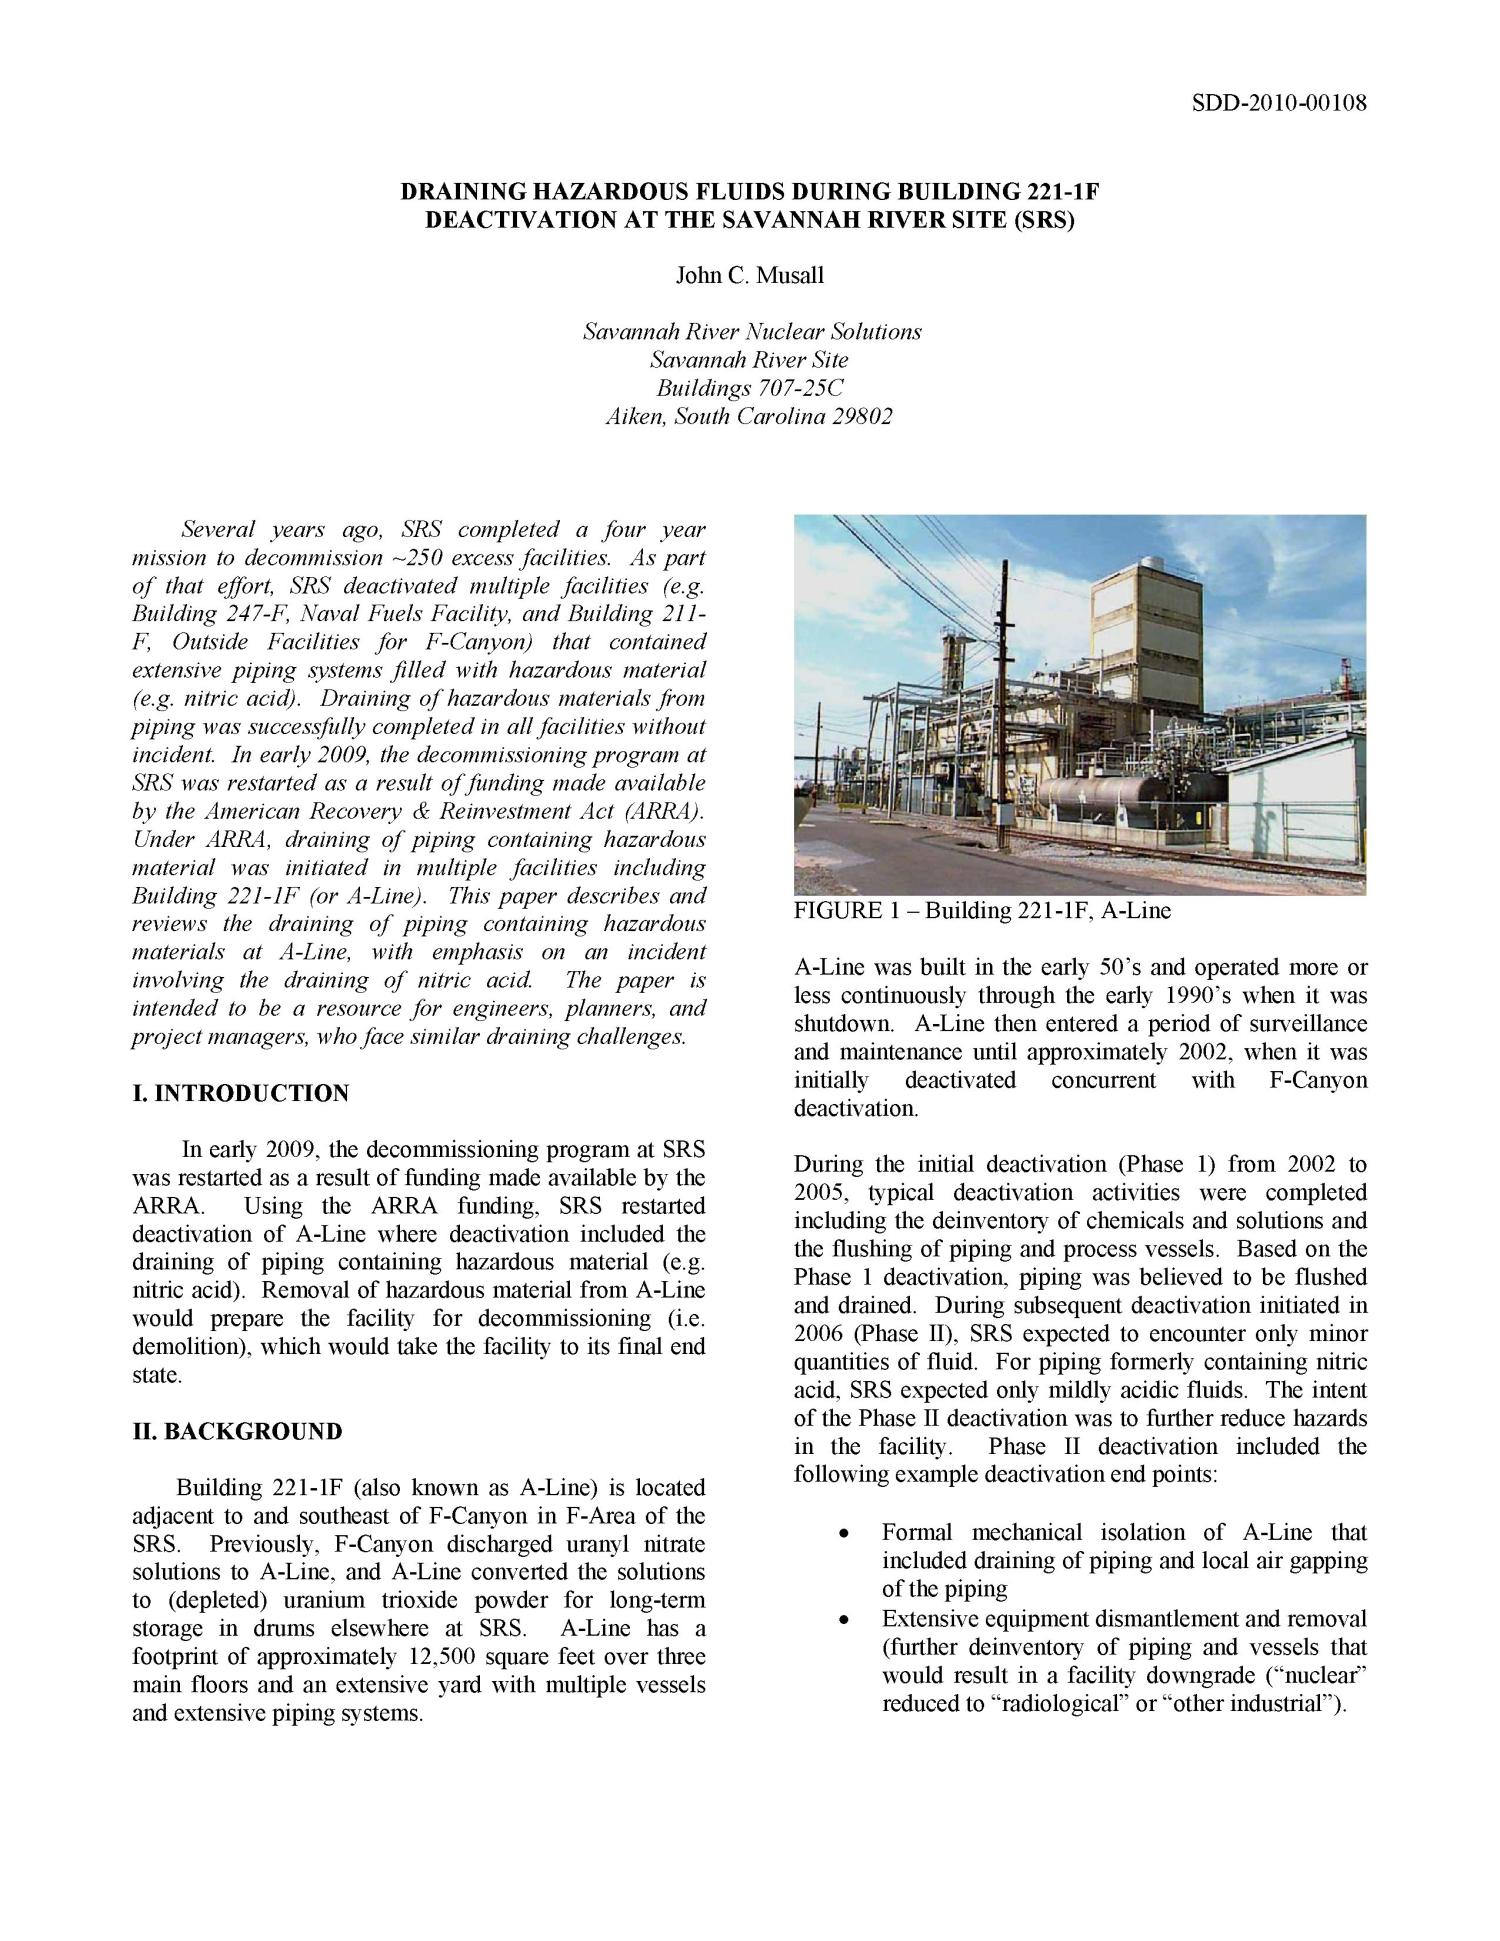 DRAINING HAZARDOUS FLUIDS DURING BUILDING 221-1F DEACTIVATION AT THE SAVANNAH RIVER SITE                                                                                                      [Sequence #]: 2 of 5